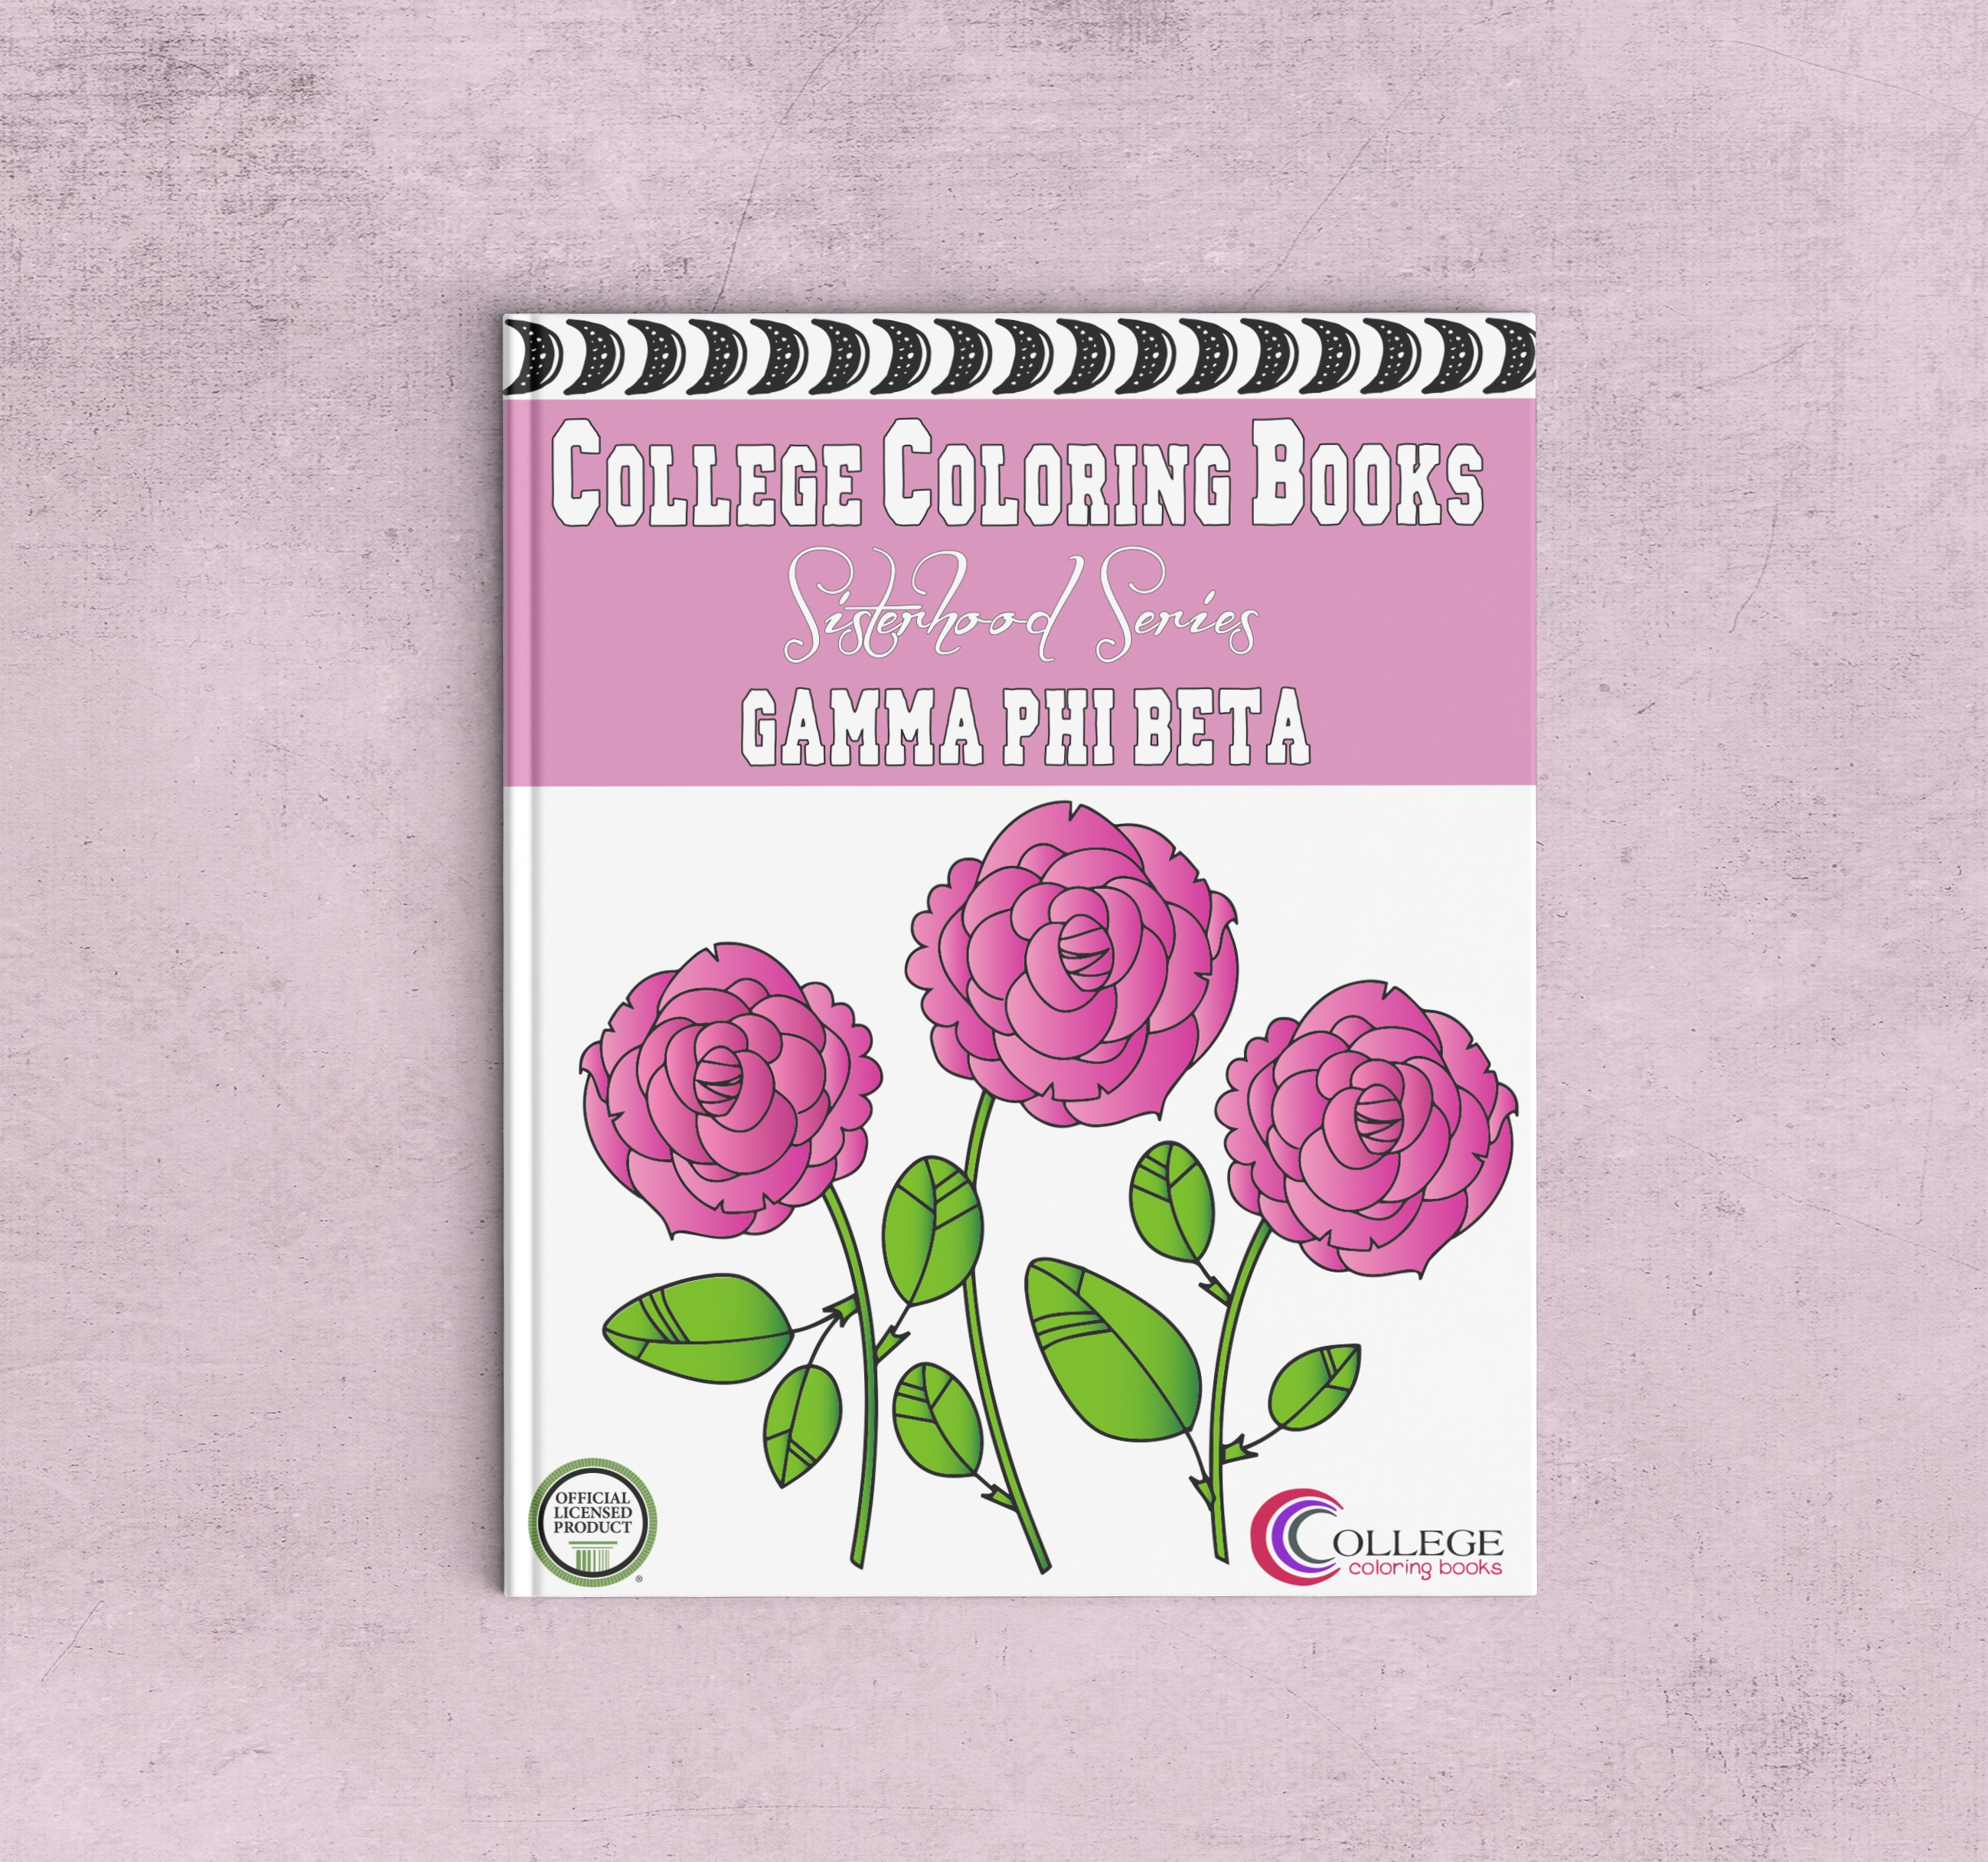 College Coloring Books Gamma Phi Beta Coloring Book Cover - Front